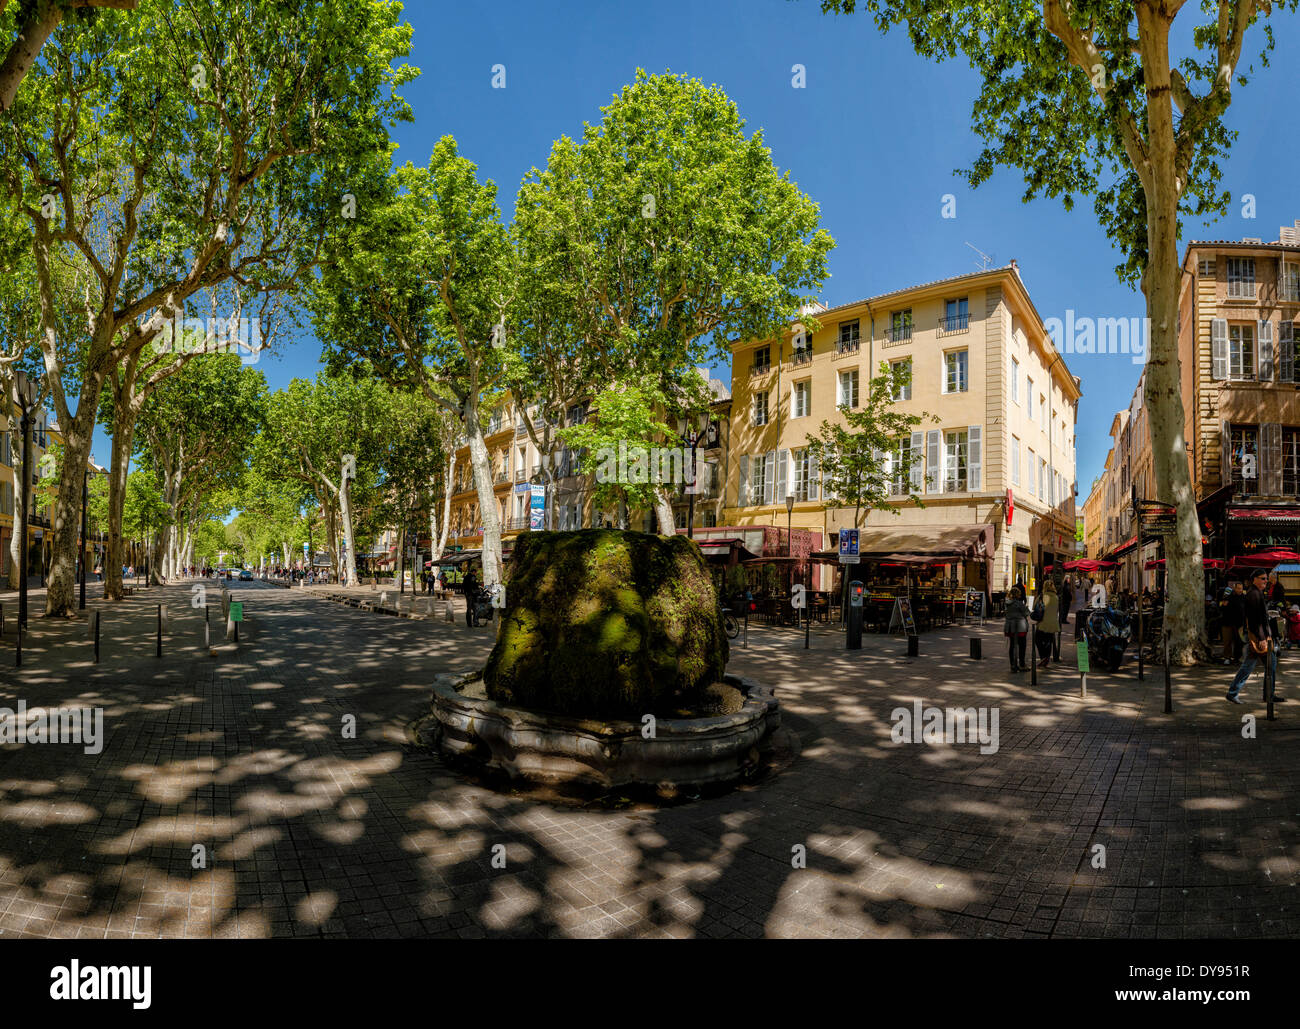 Cours Mirabeau, town, village, forest, wood, trees, spring, Aix en Provence, Bouches du Rhone, France, Europe, - Stock Image